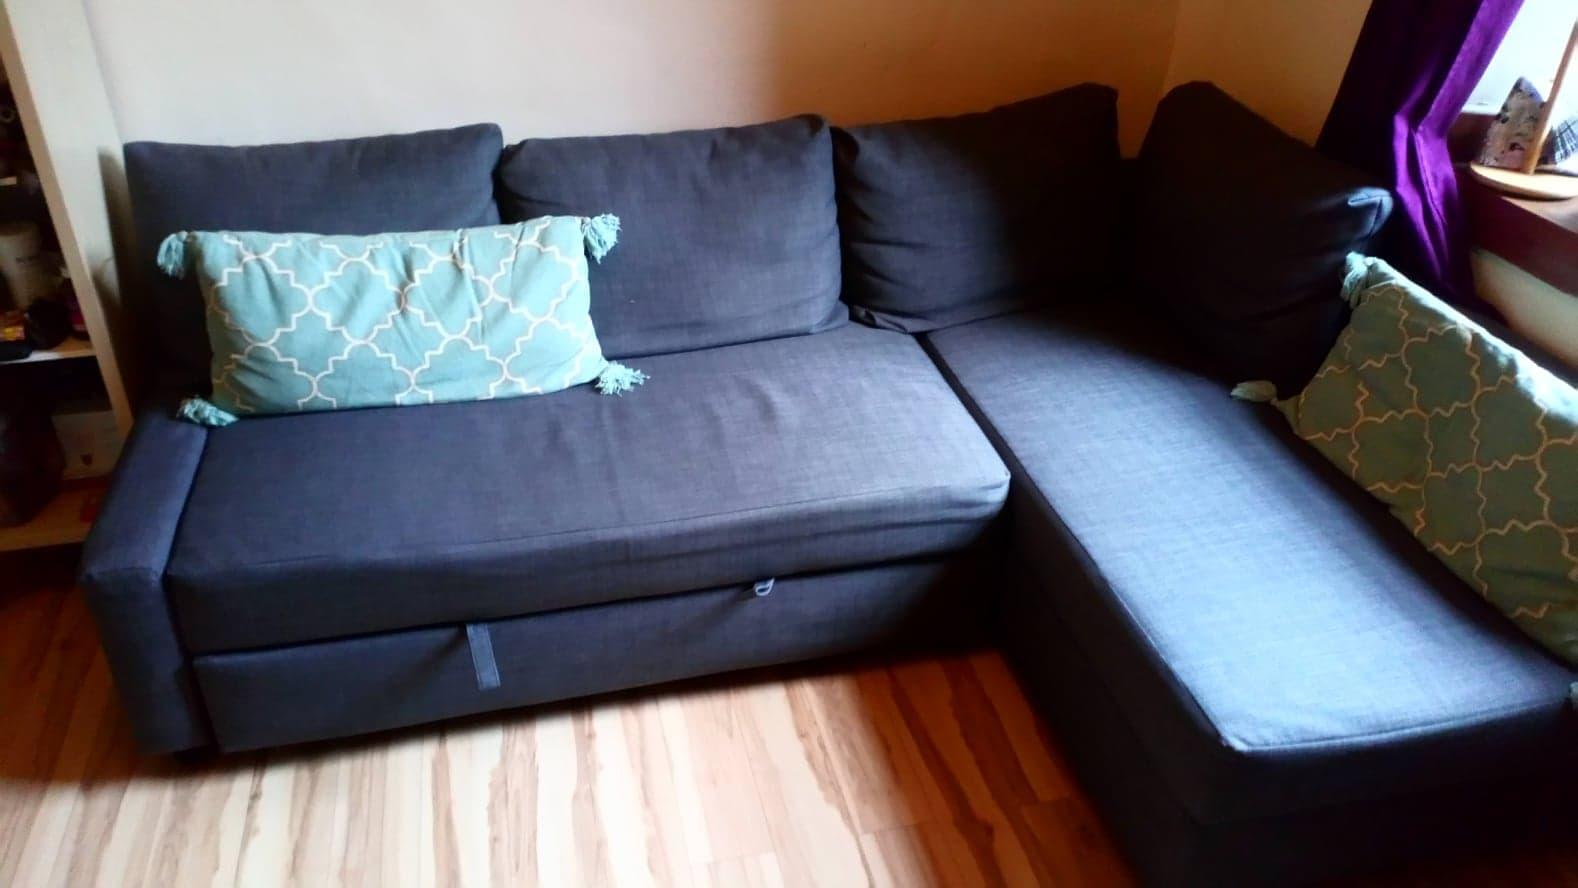 Phenomenal Sofa Bed Table From Ikea For Sale In Glasgow Sold Gmtry Best Dining Table And Chair Ideas Images Gmtryco